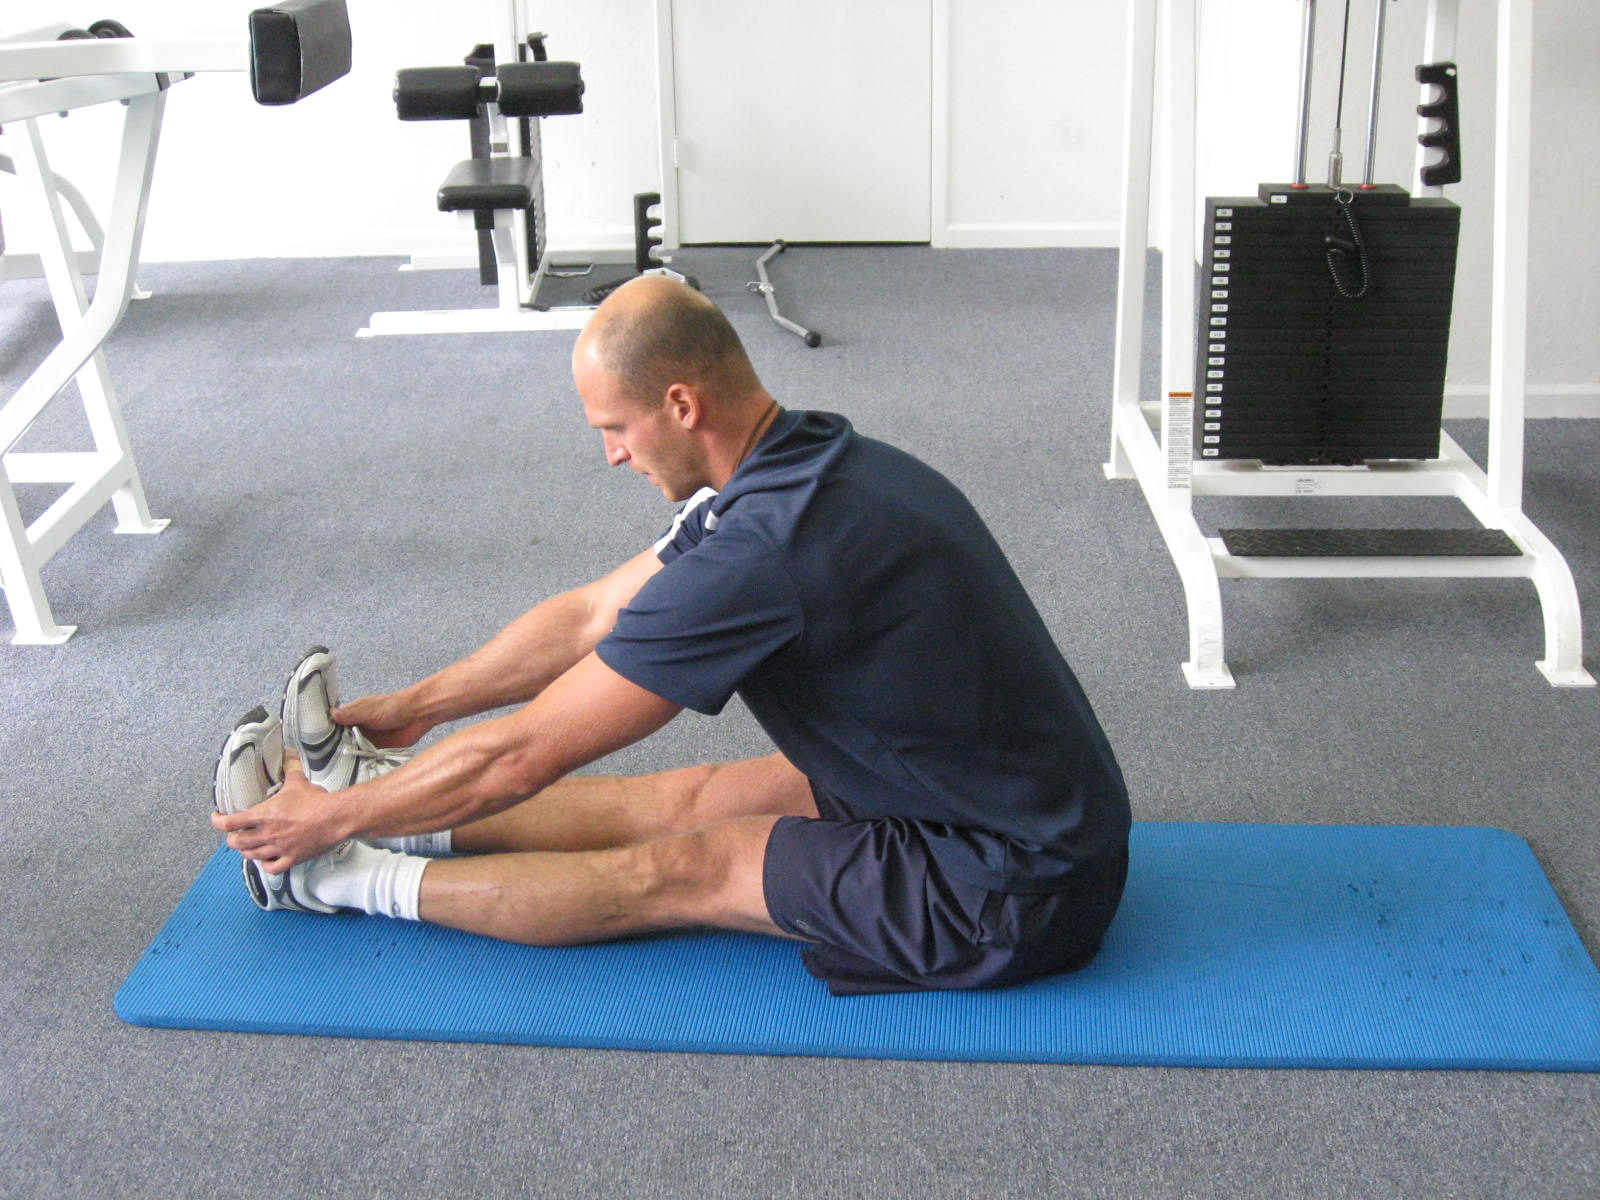 all body resistance workout - hamstring stretch